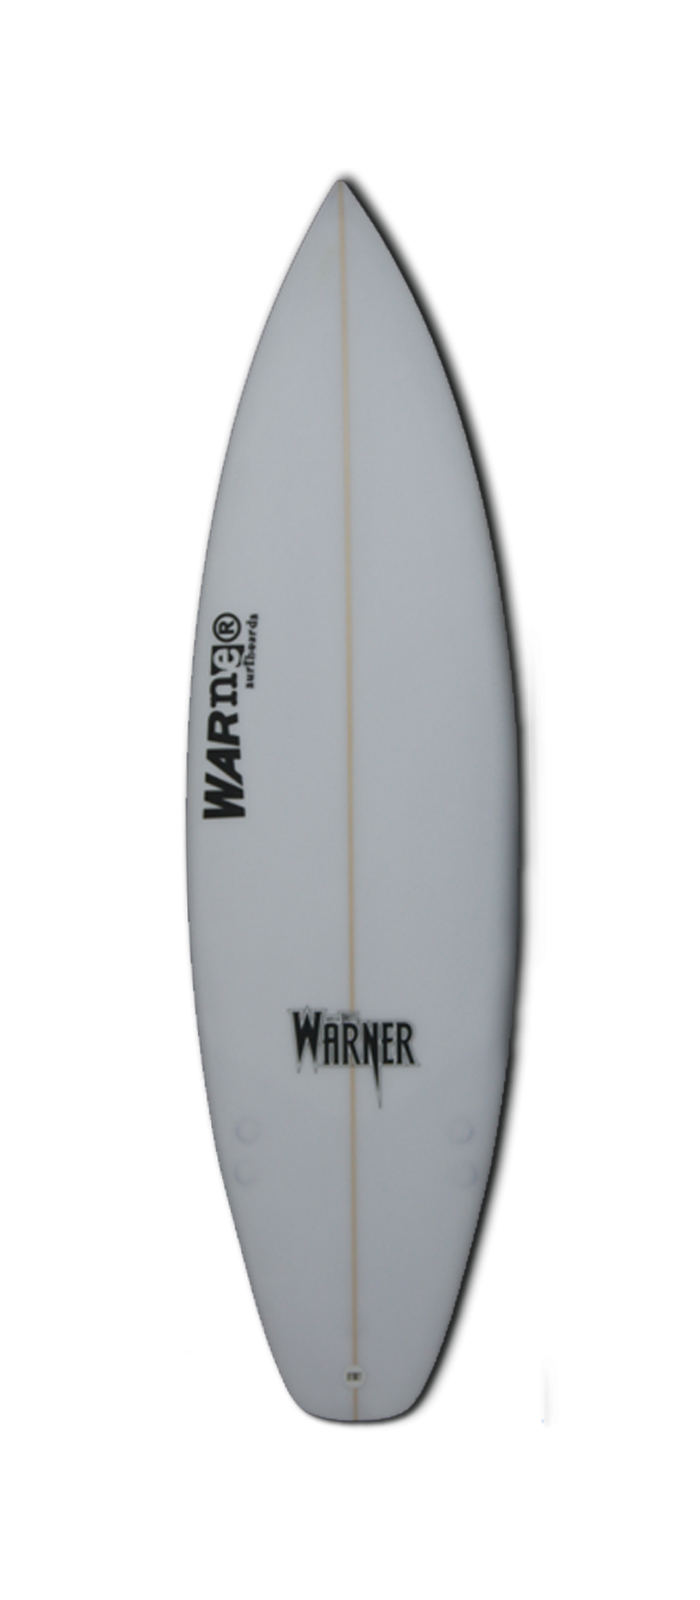 WILD CHILD surfboard model